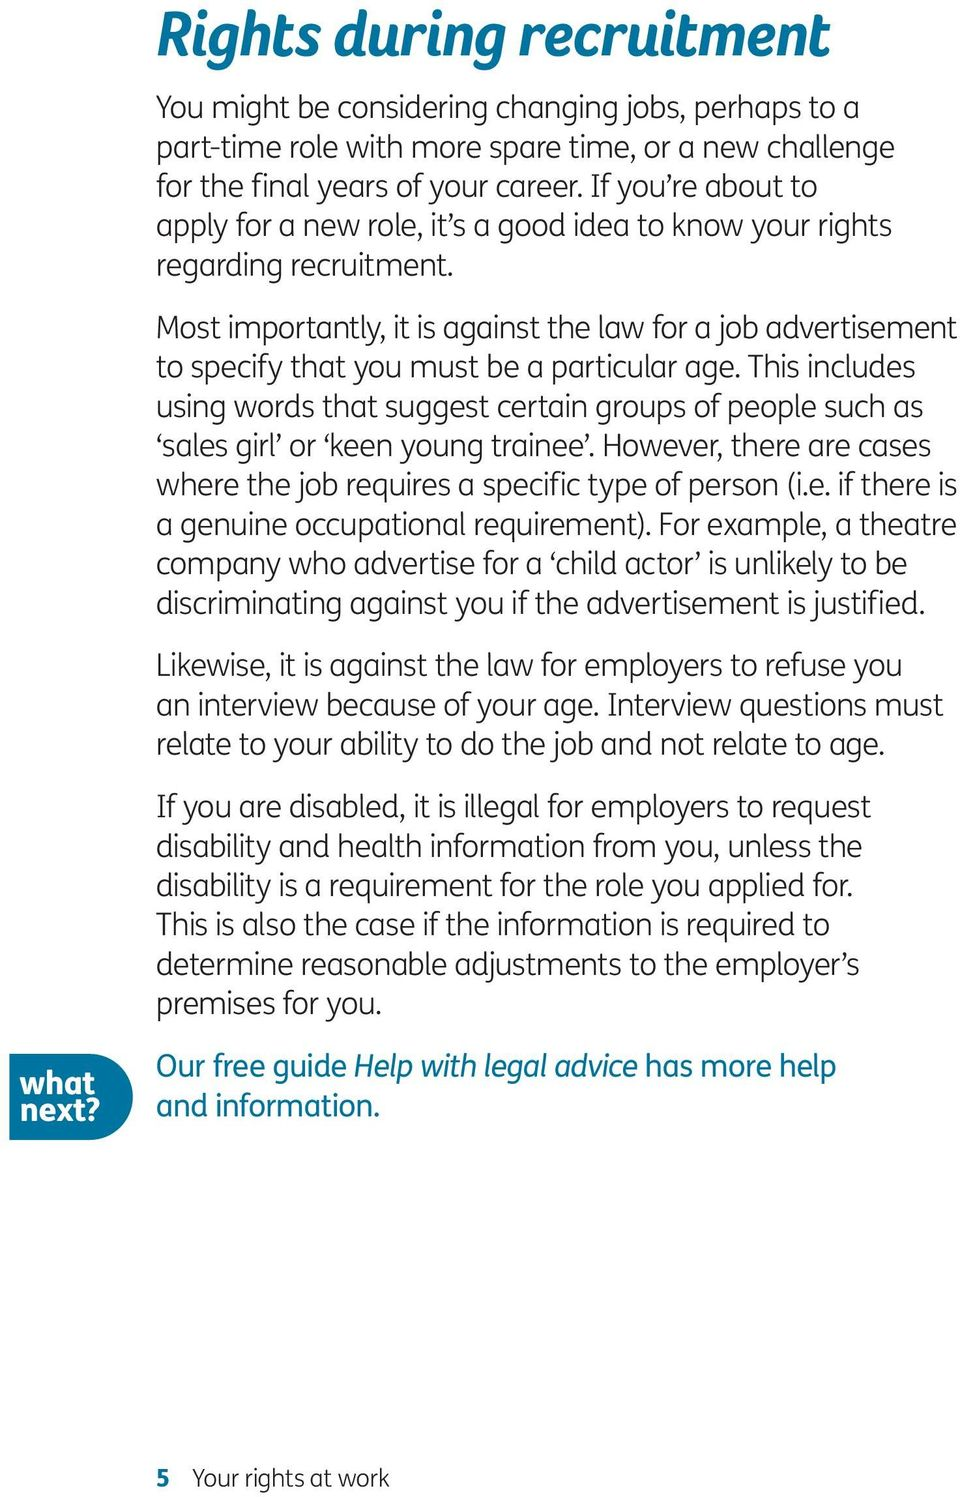 Most importantly, it is against the law for a job advertisement to specify that you must be a particular age.